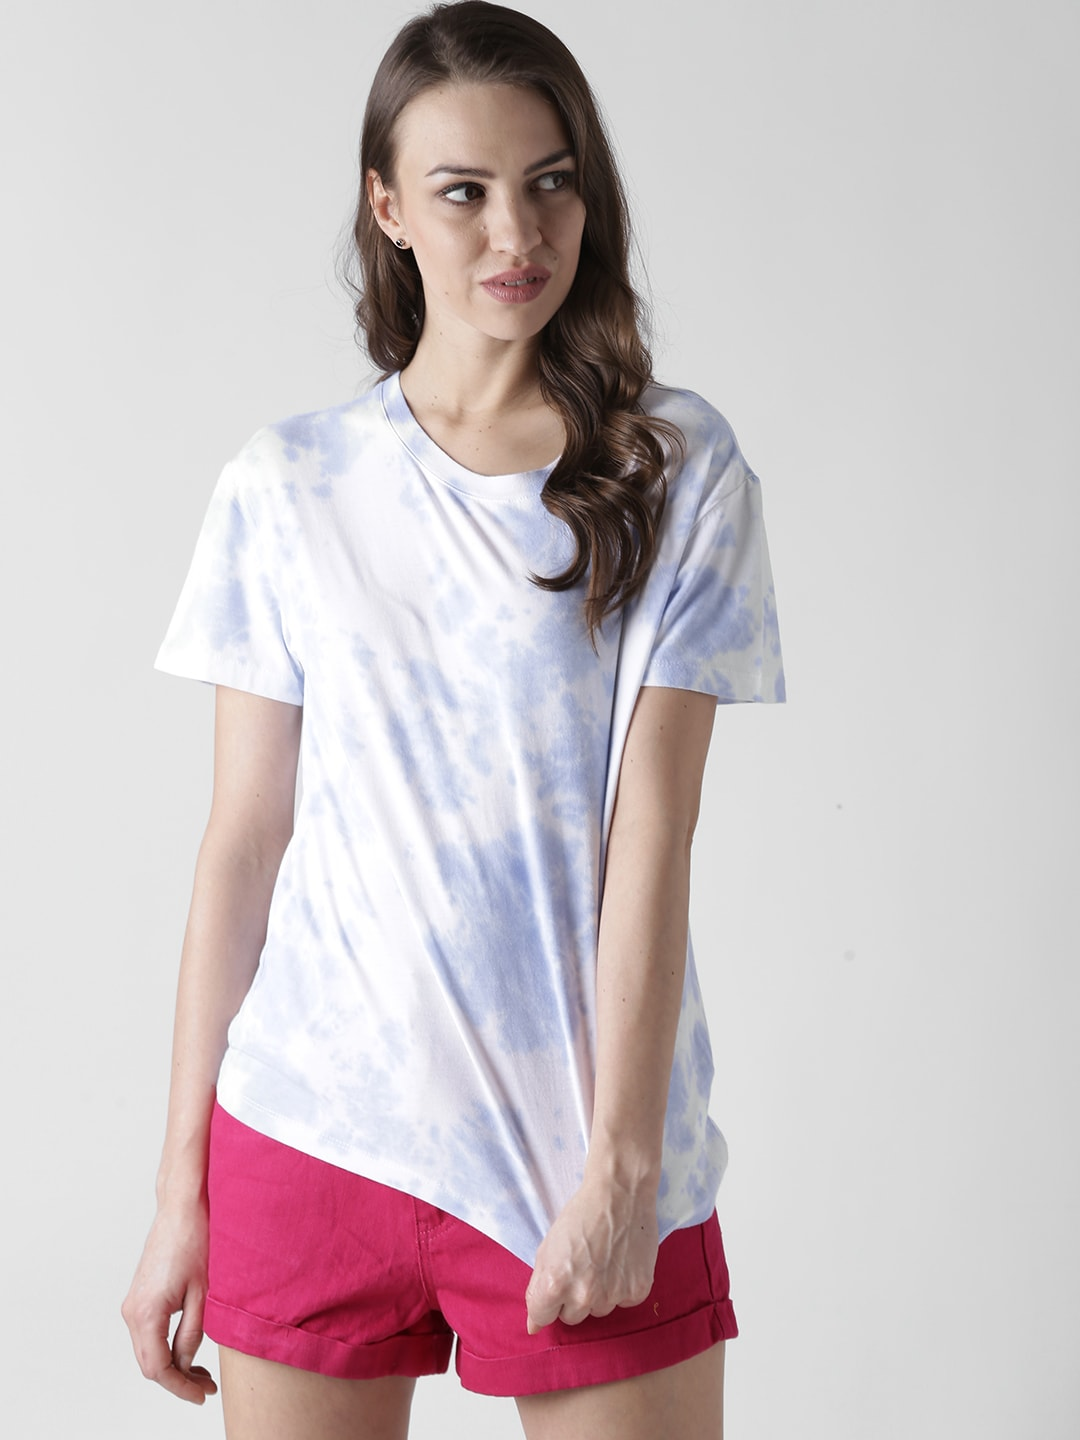 288238fd10f541 Ladies Tops - Buy Tops   T-shirts for Women Online